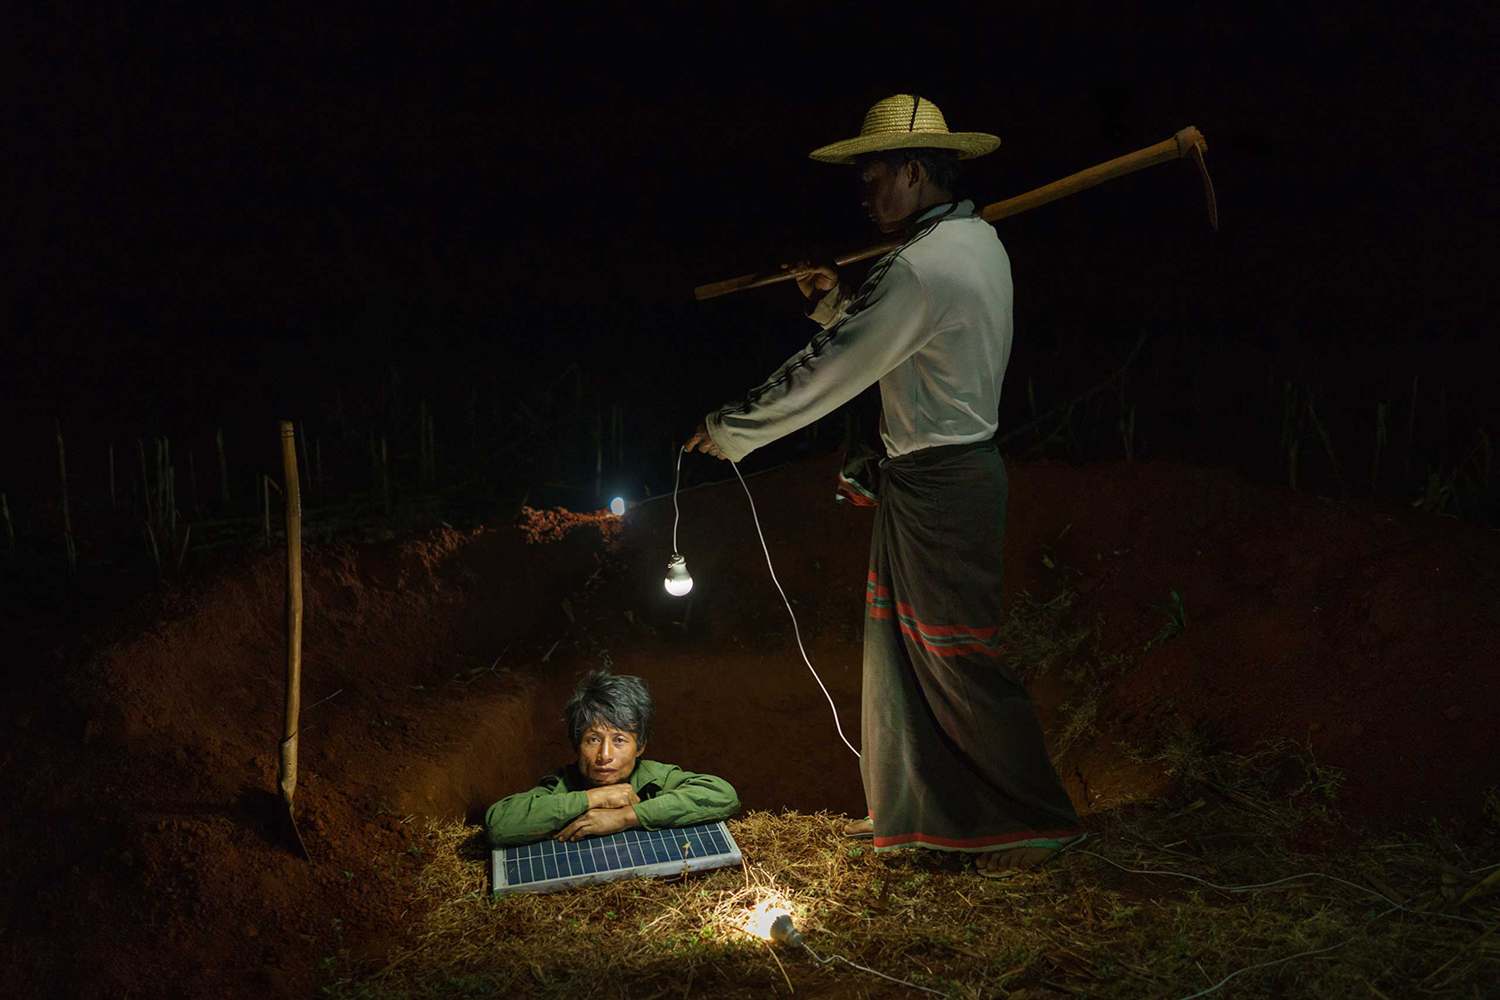 Construction workers dig a household latrine in Pa Dan Kho Village, Kayah State, Burma.